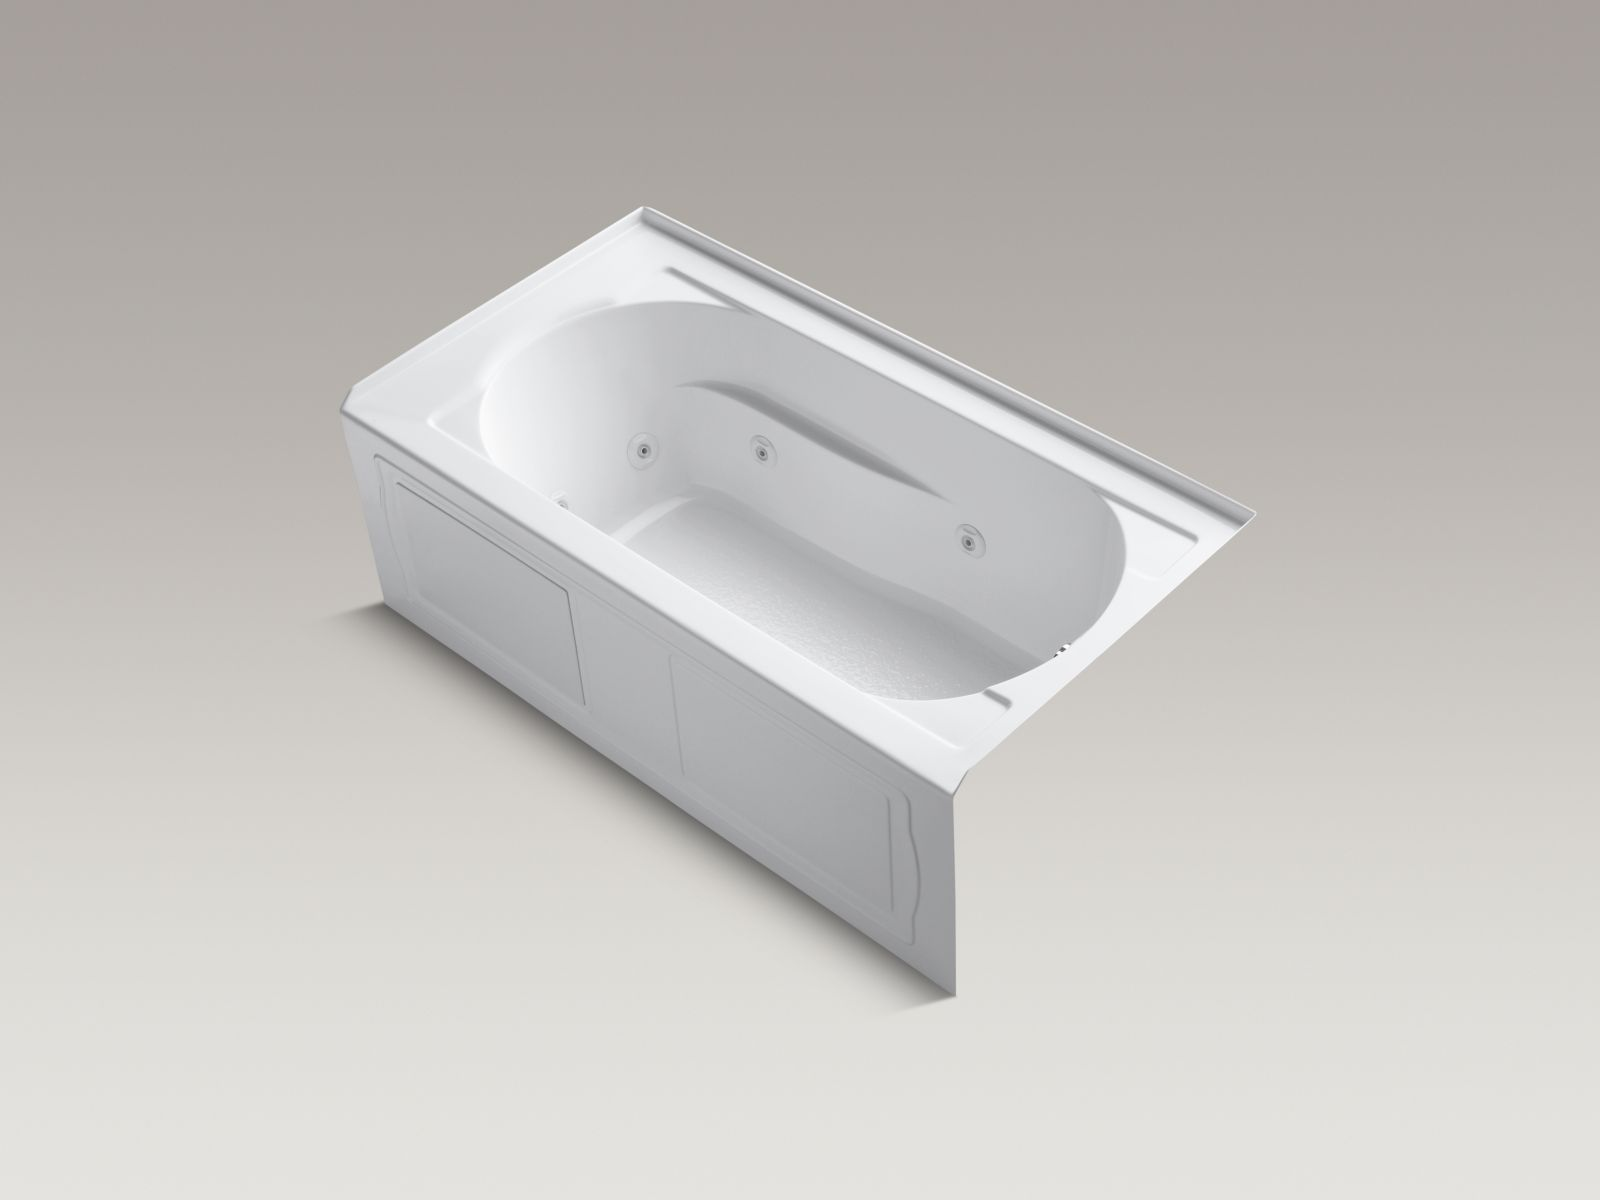 Kohler K-1357-RA-0 Devonshire 5' Whirlpool with Integral Apron and Right-hand Drain White